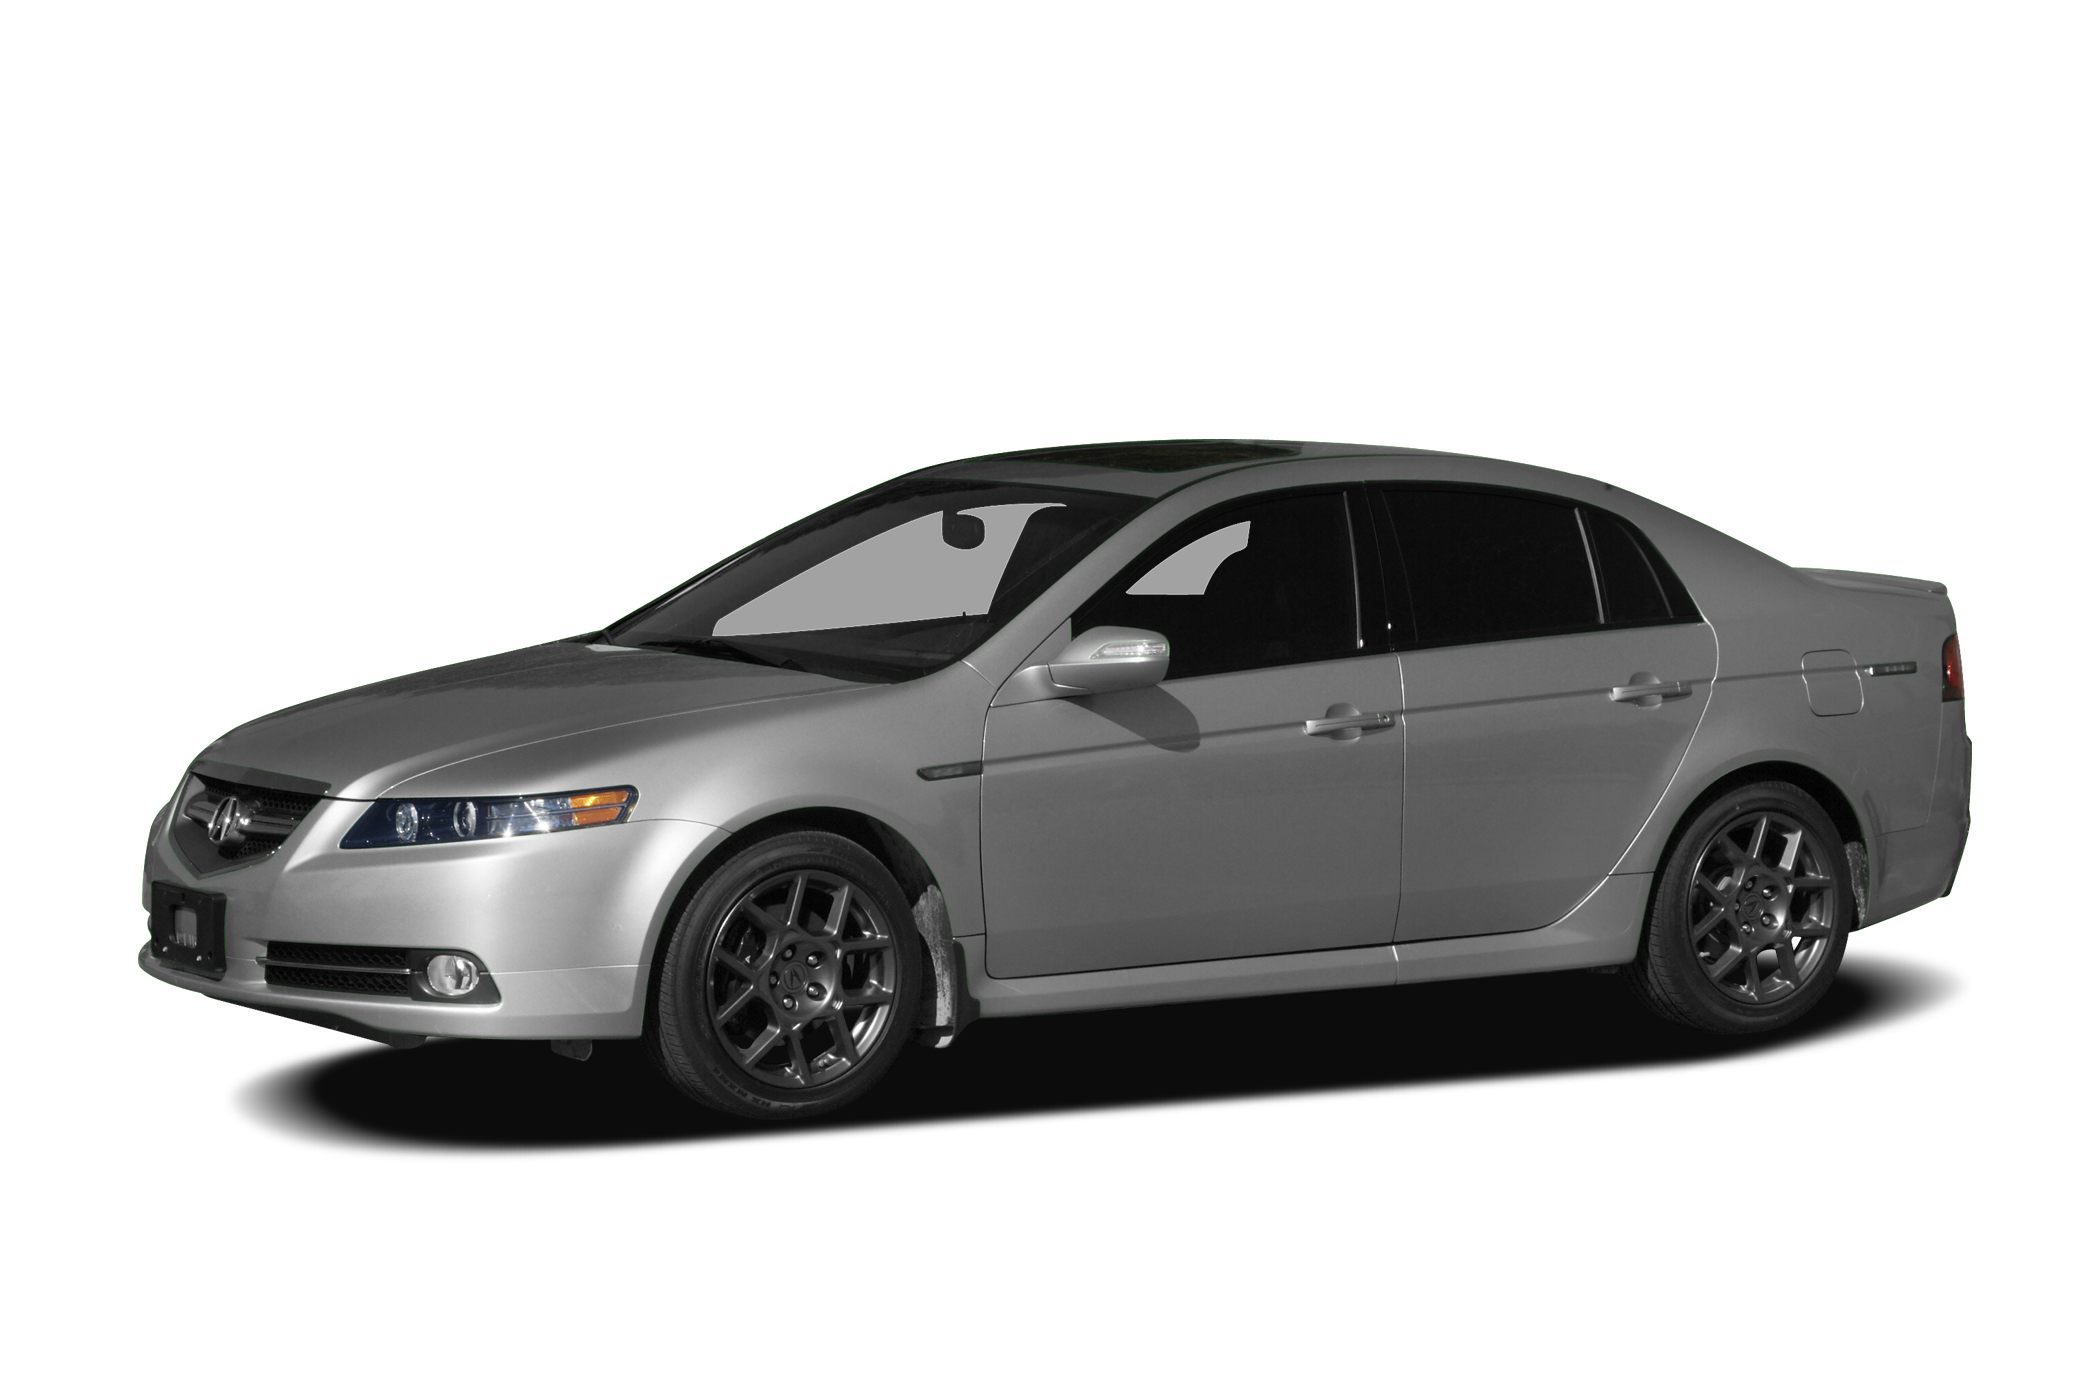 2007 Acura TL  Clean Carfax - Navigation System - Bluetooth - Alloy Wheels - Heated Mirrors - Heat